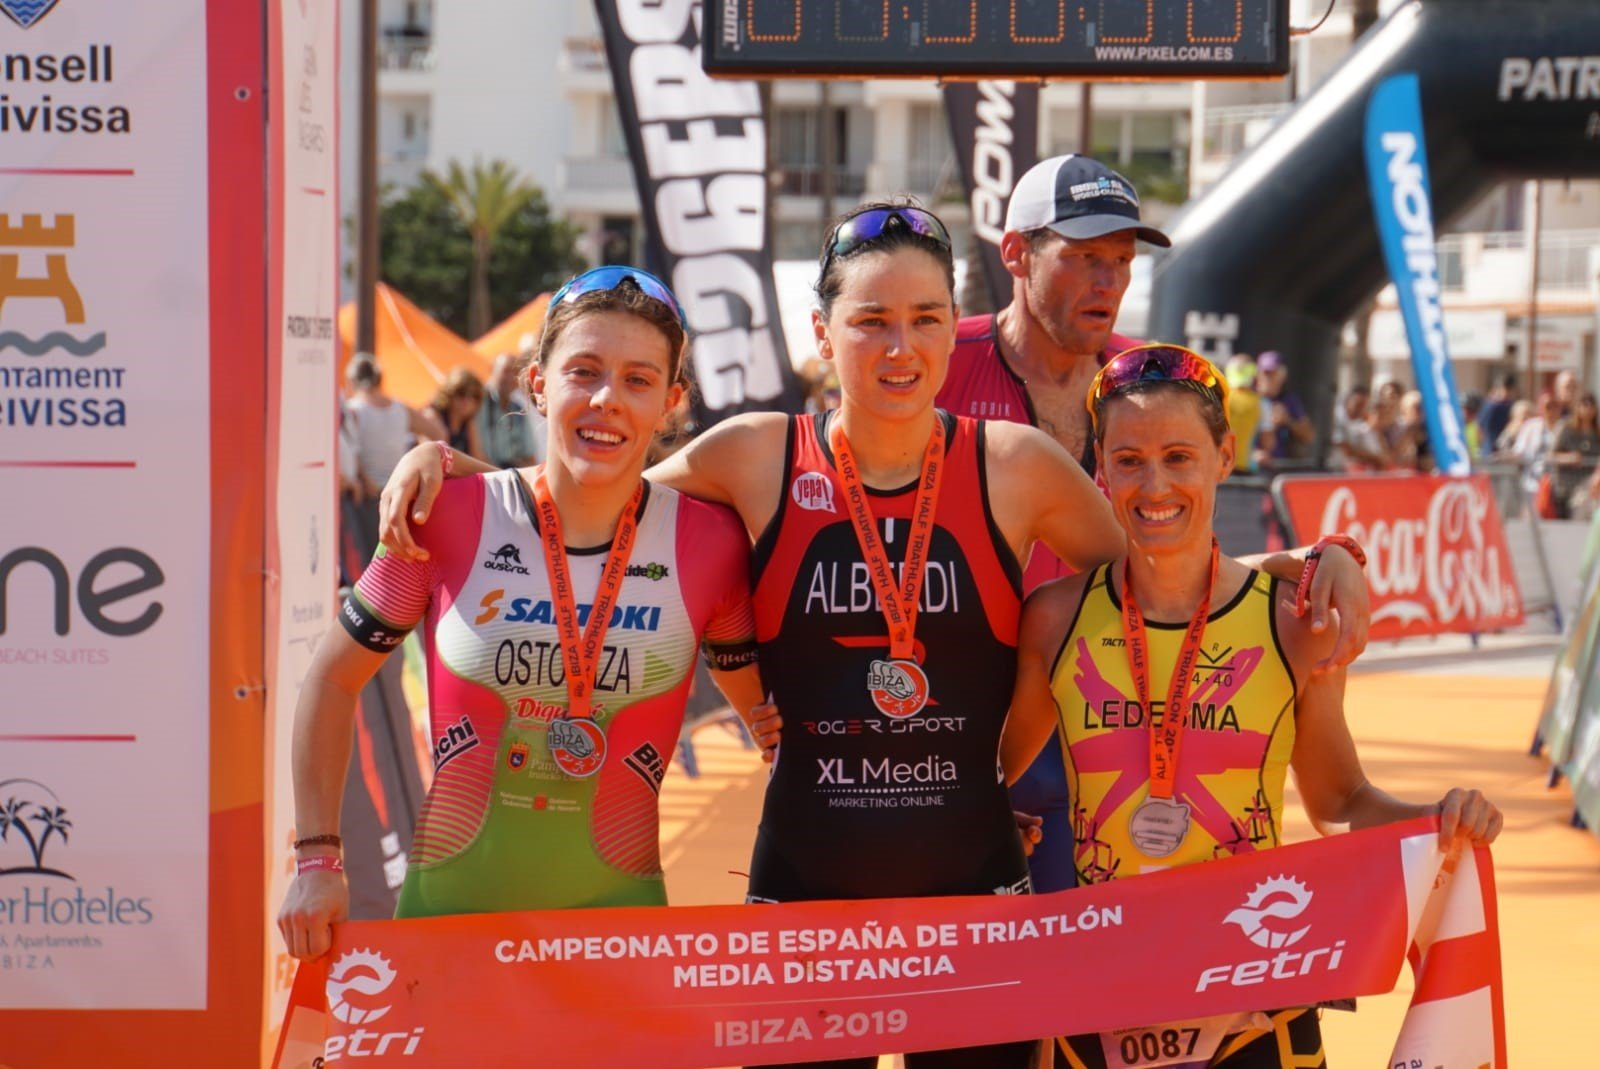 Ander Okamika and Helene Alberdi MD Spanish Triathlon Champions in Ibiza